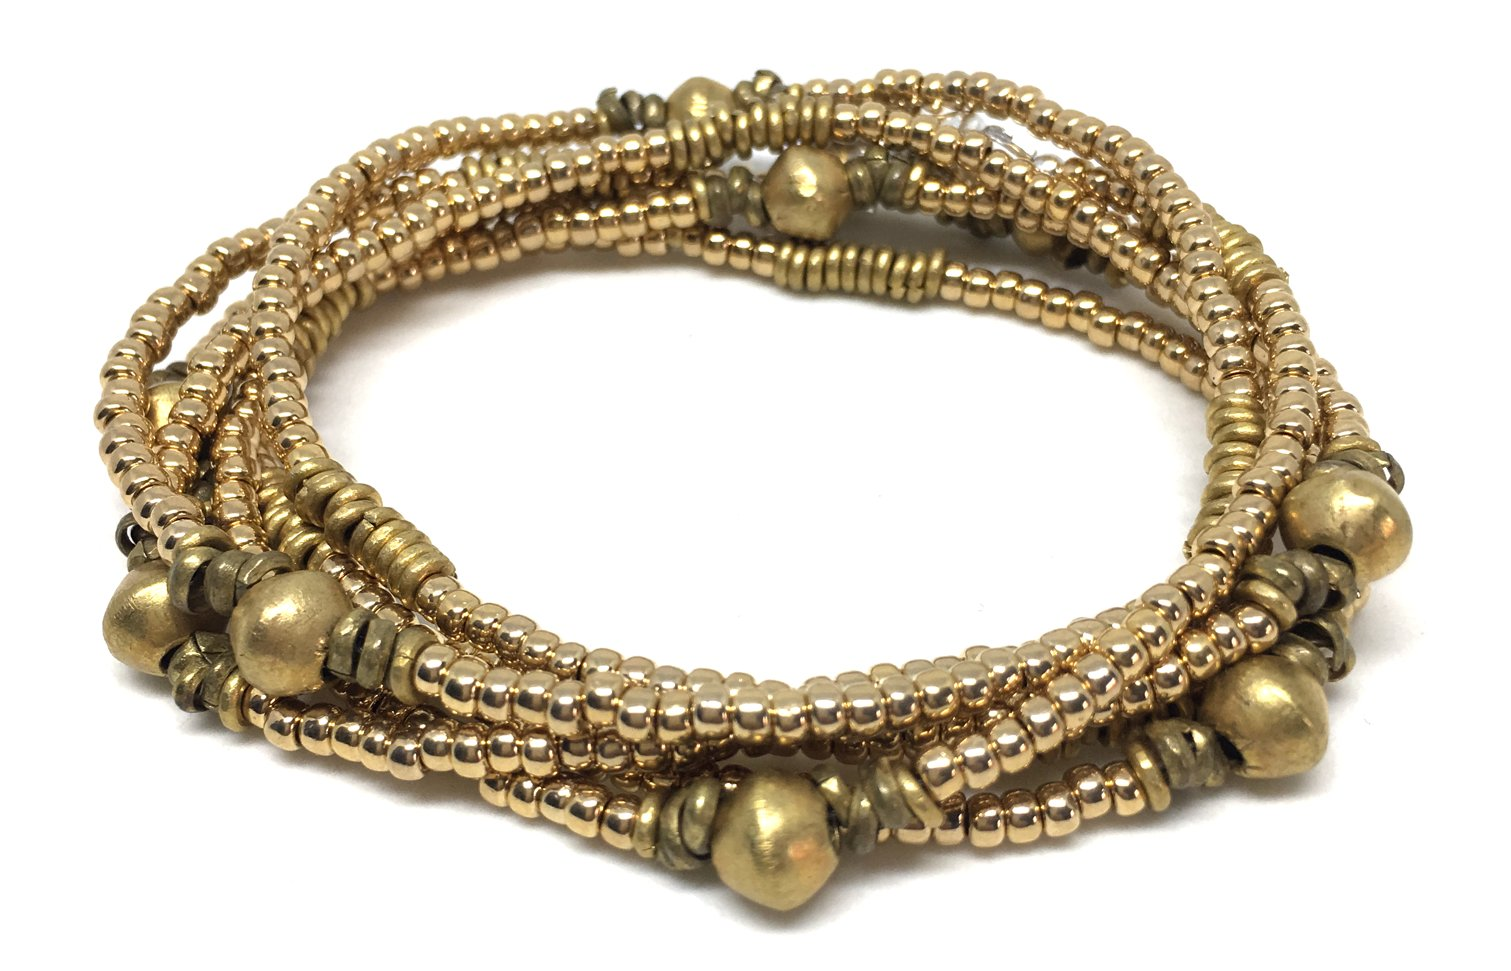 Ethiopian handmade brass kenyan 24k gold glass beaded wrap bracelet anklet choker necklace